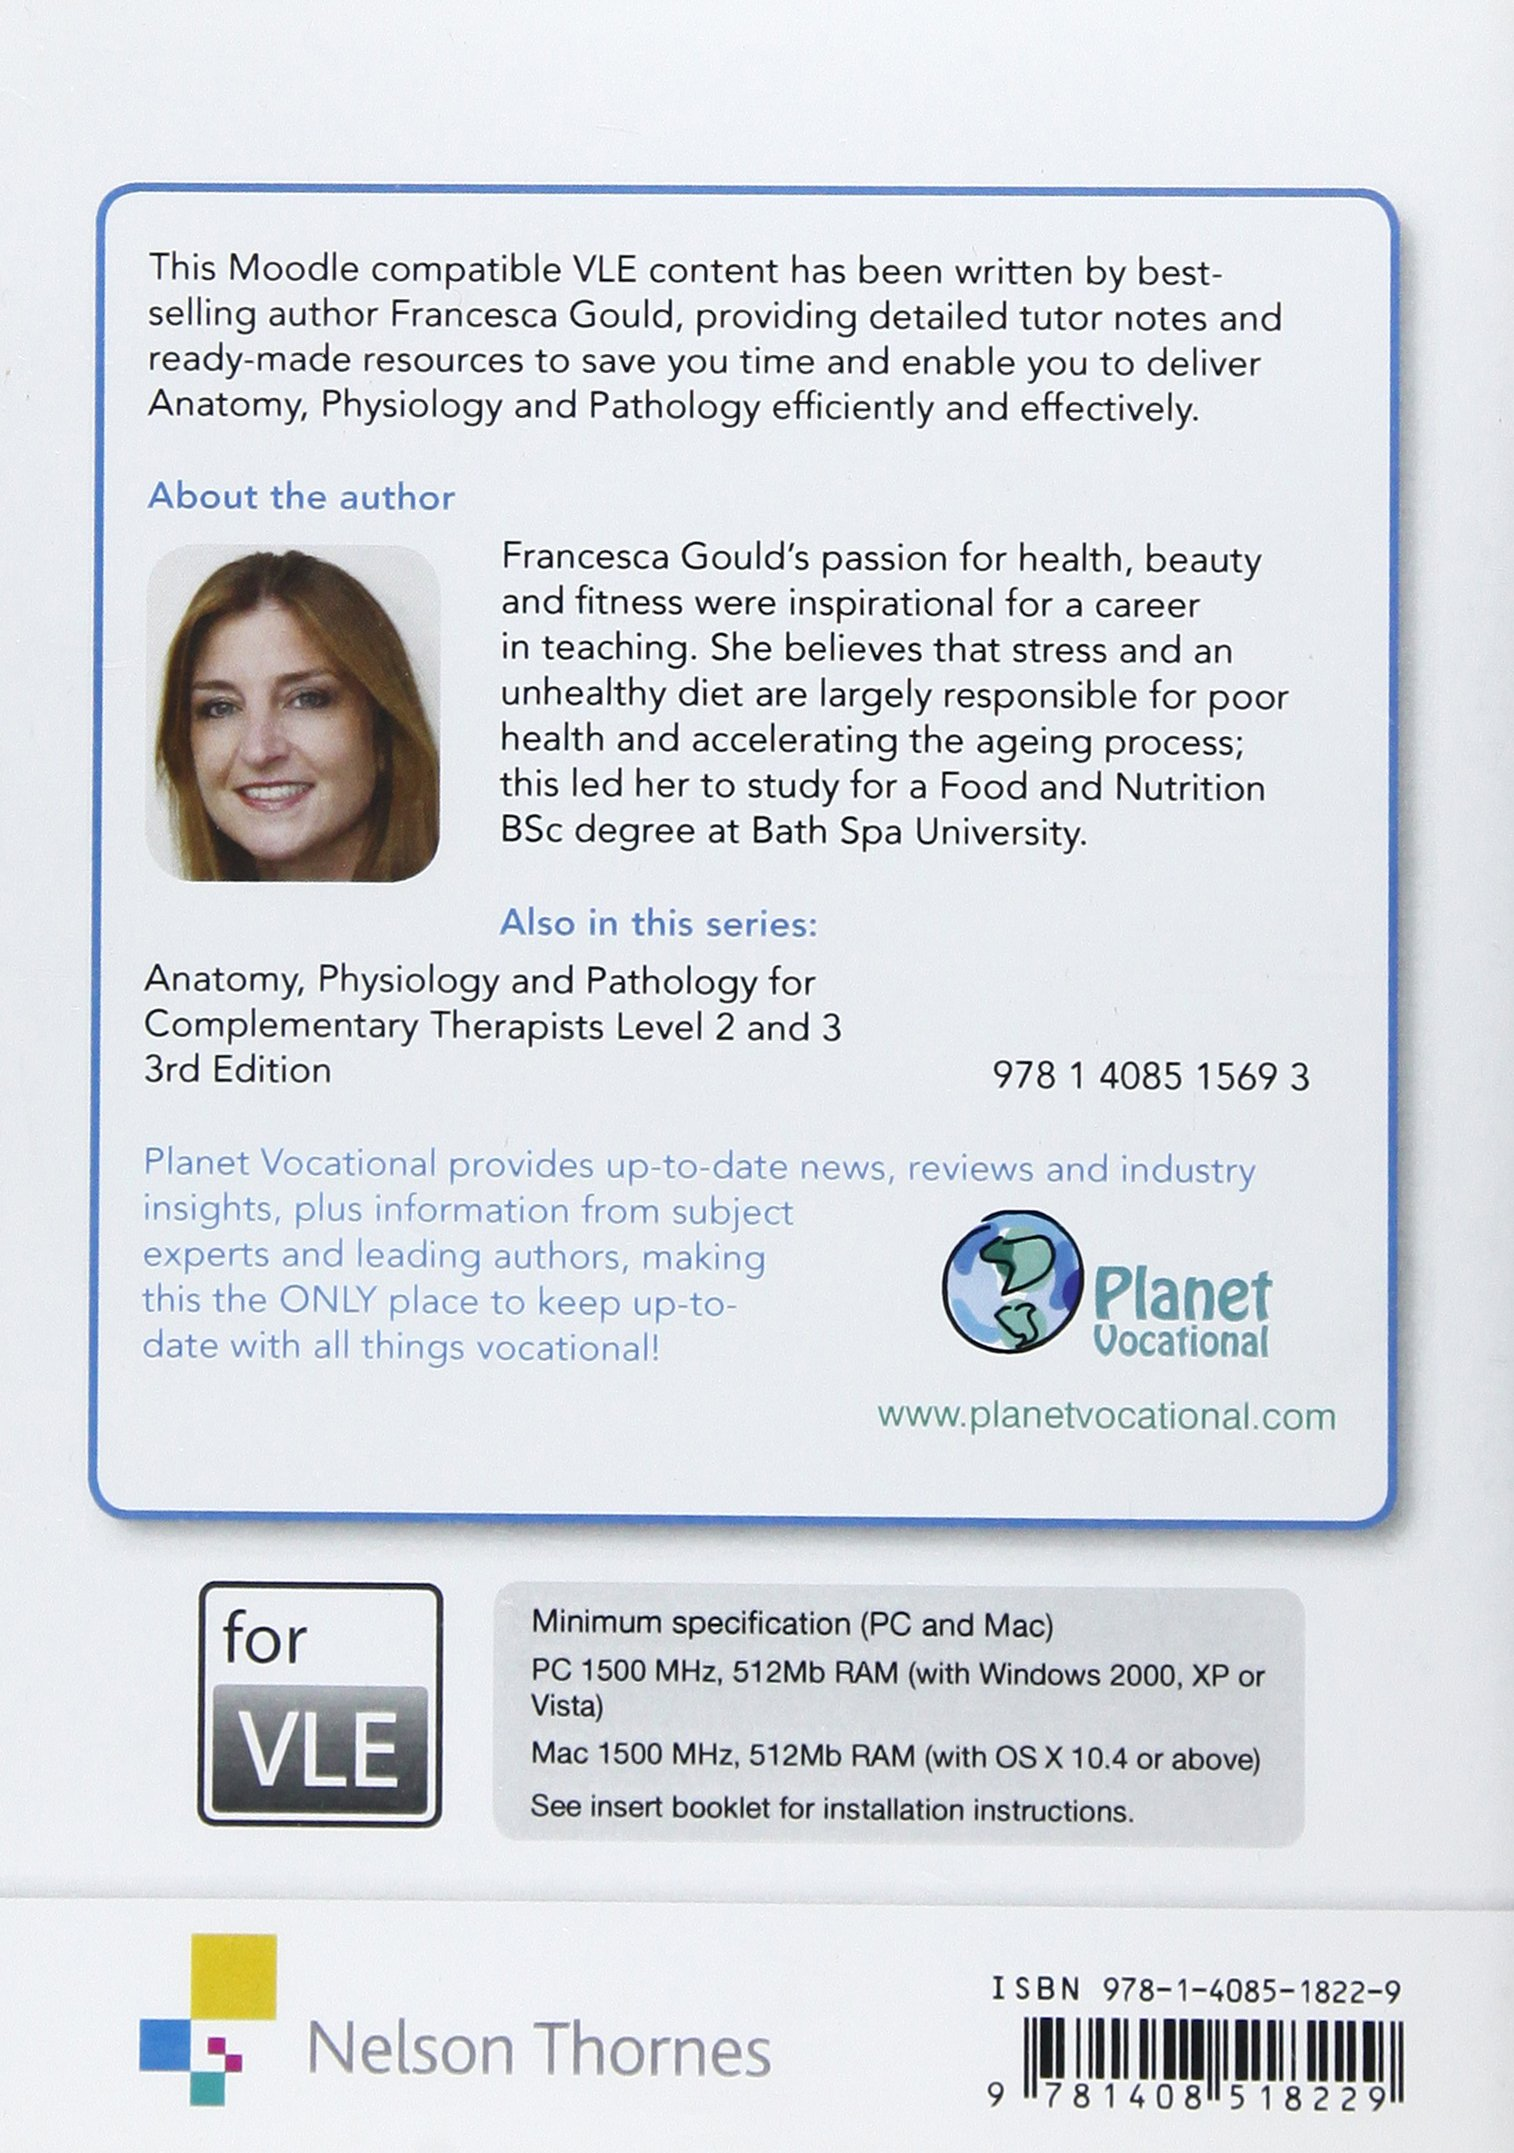 Anatomy, Physiology & Pathology Complementary Therapists Level 2/3 ...